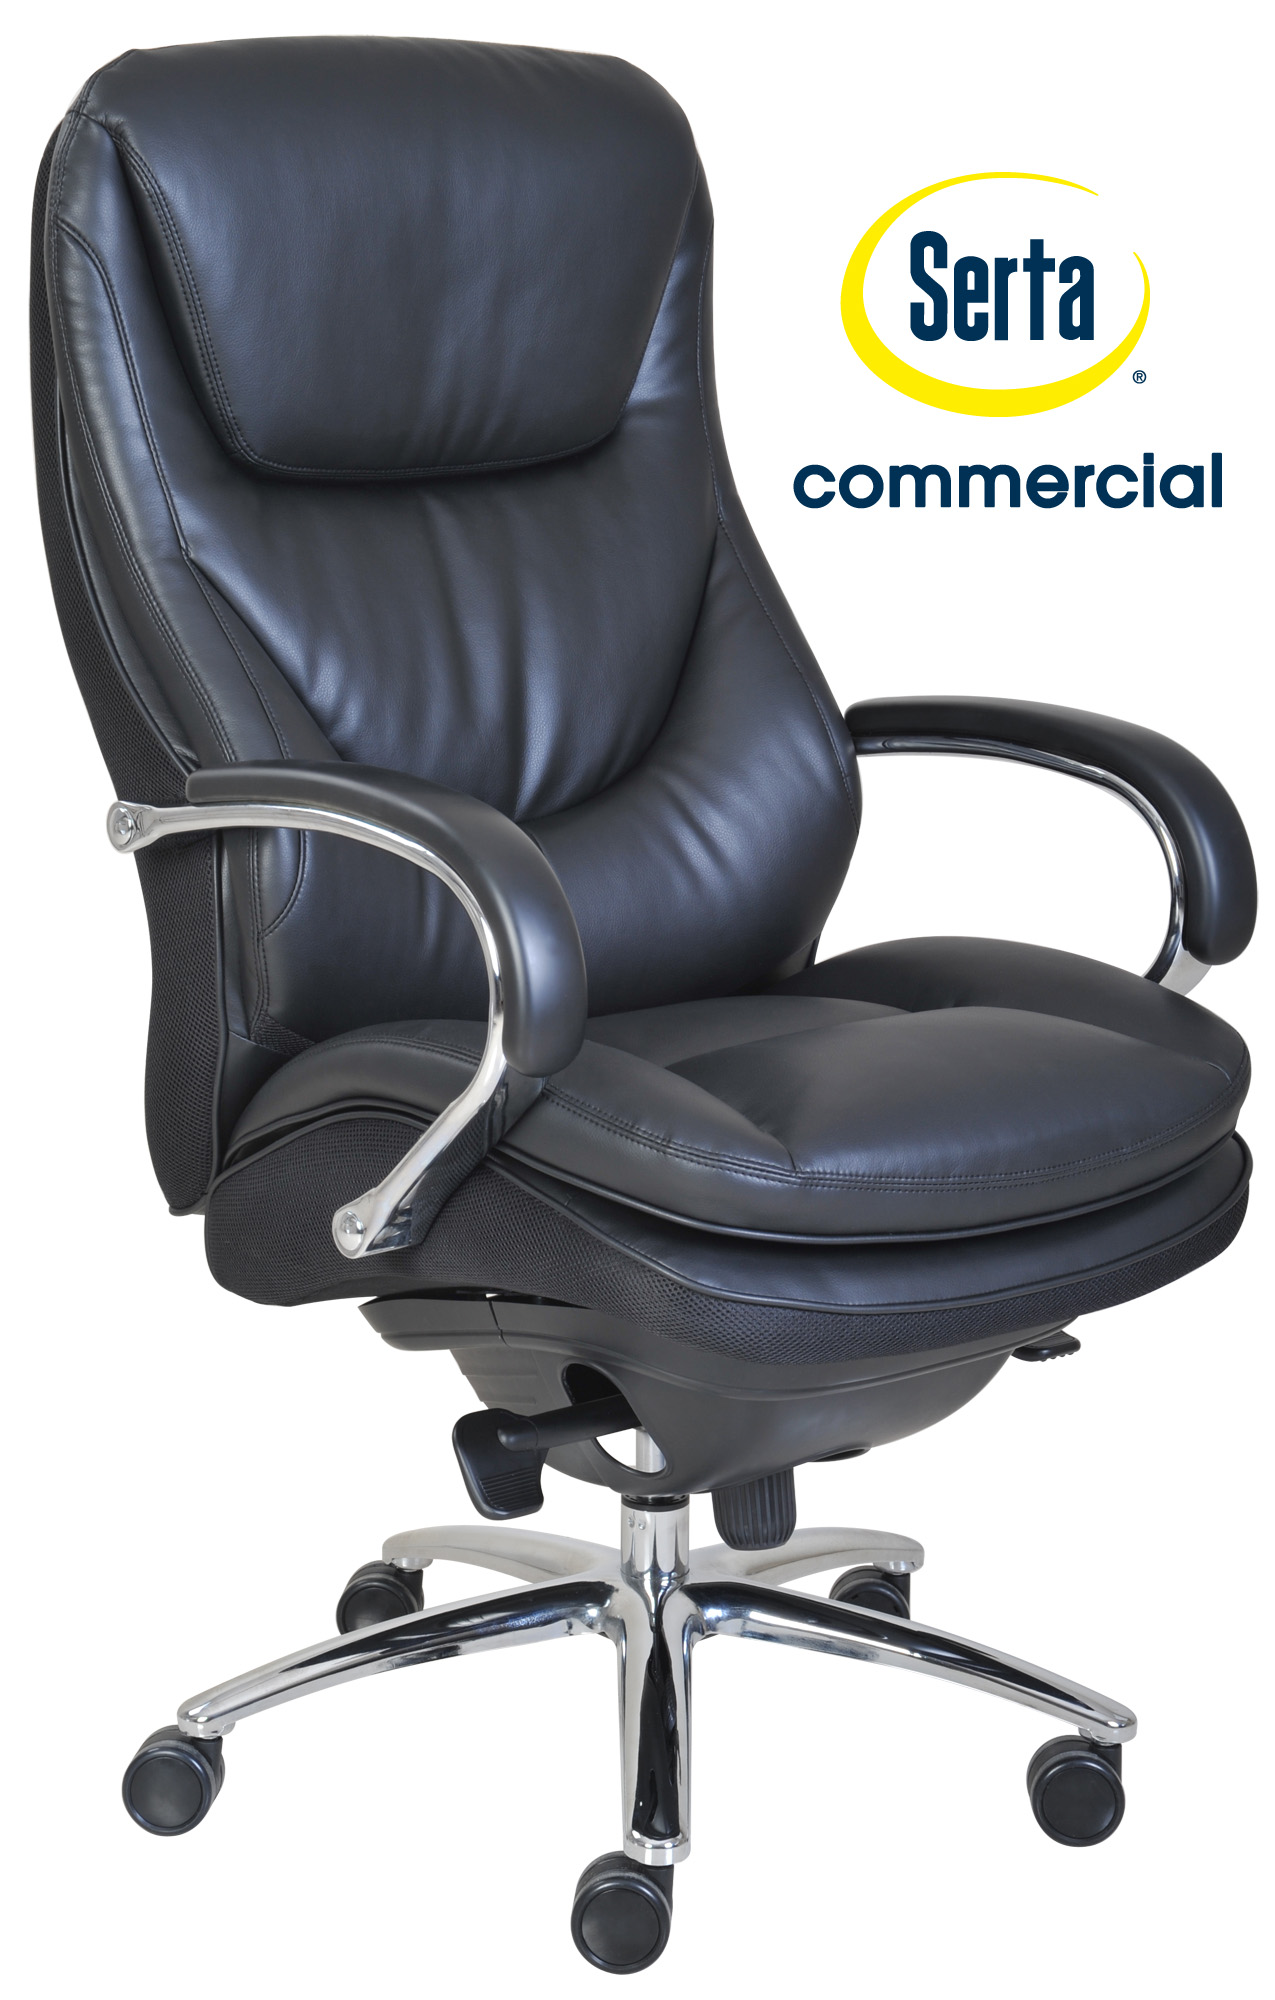 serta office chair warranty claim sofas and chairs smart layers commercial big tall series 500